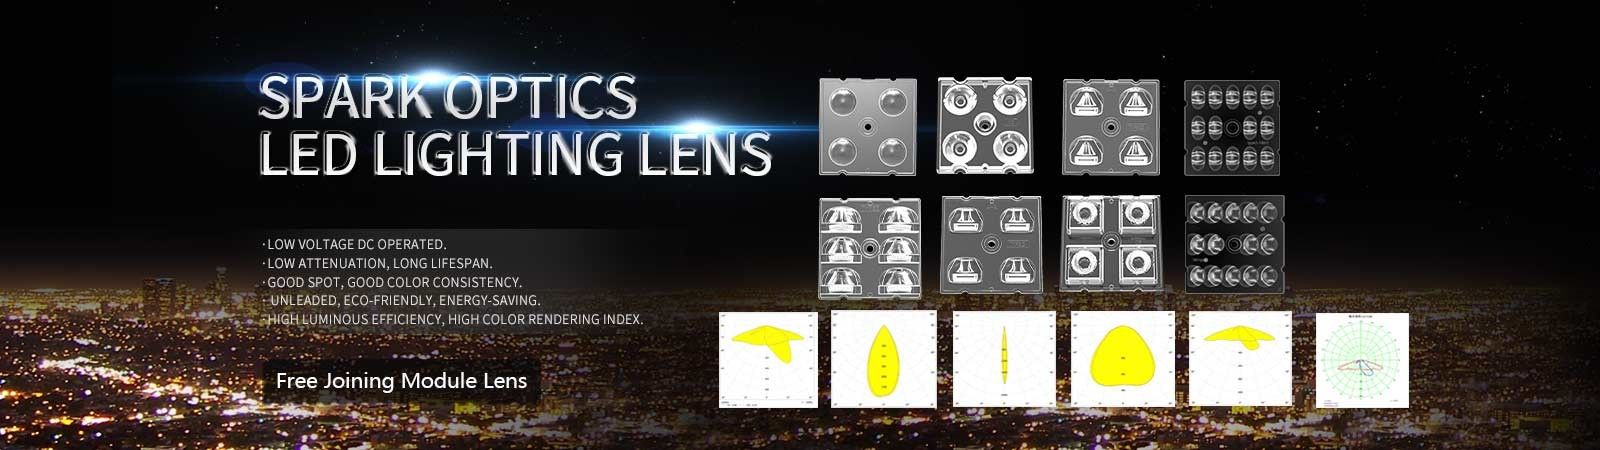 LED Optics Lenses